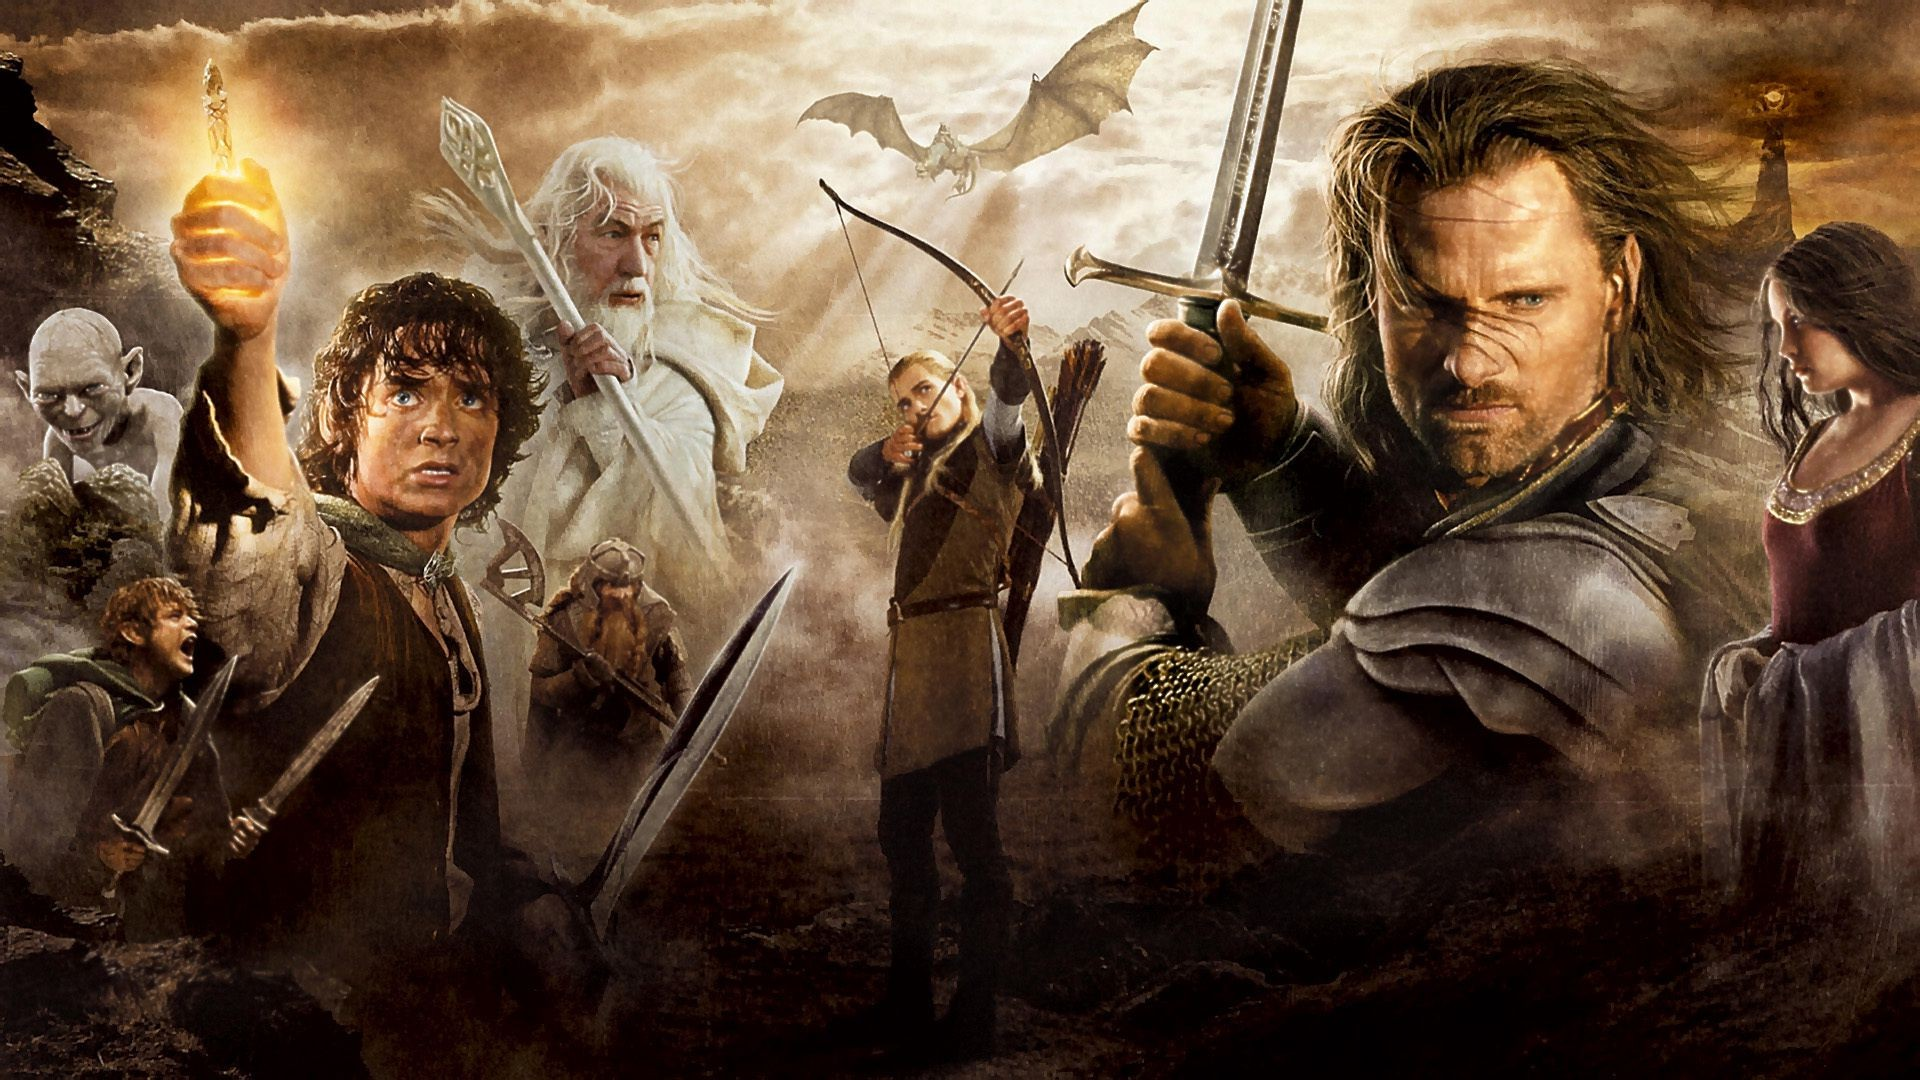 movie Фильм the lord of the rings властелин колец фродо,